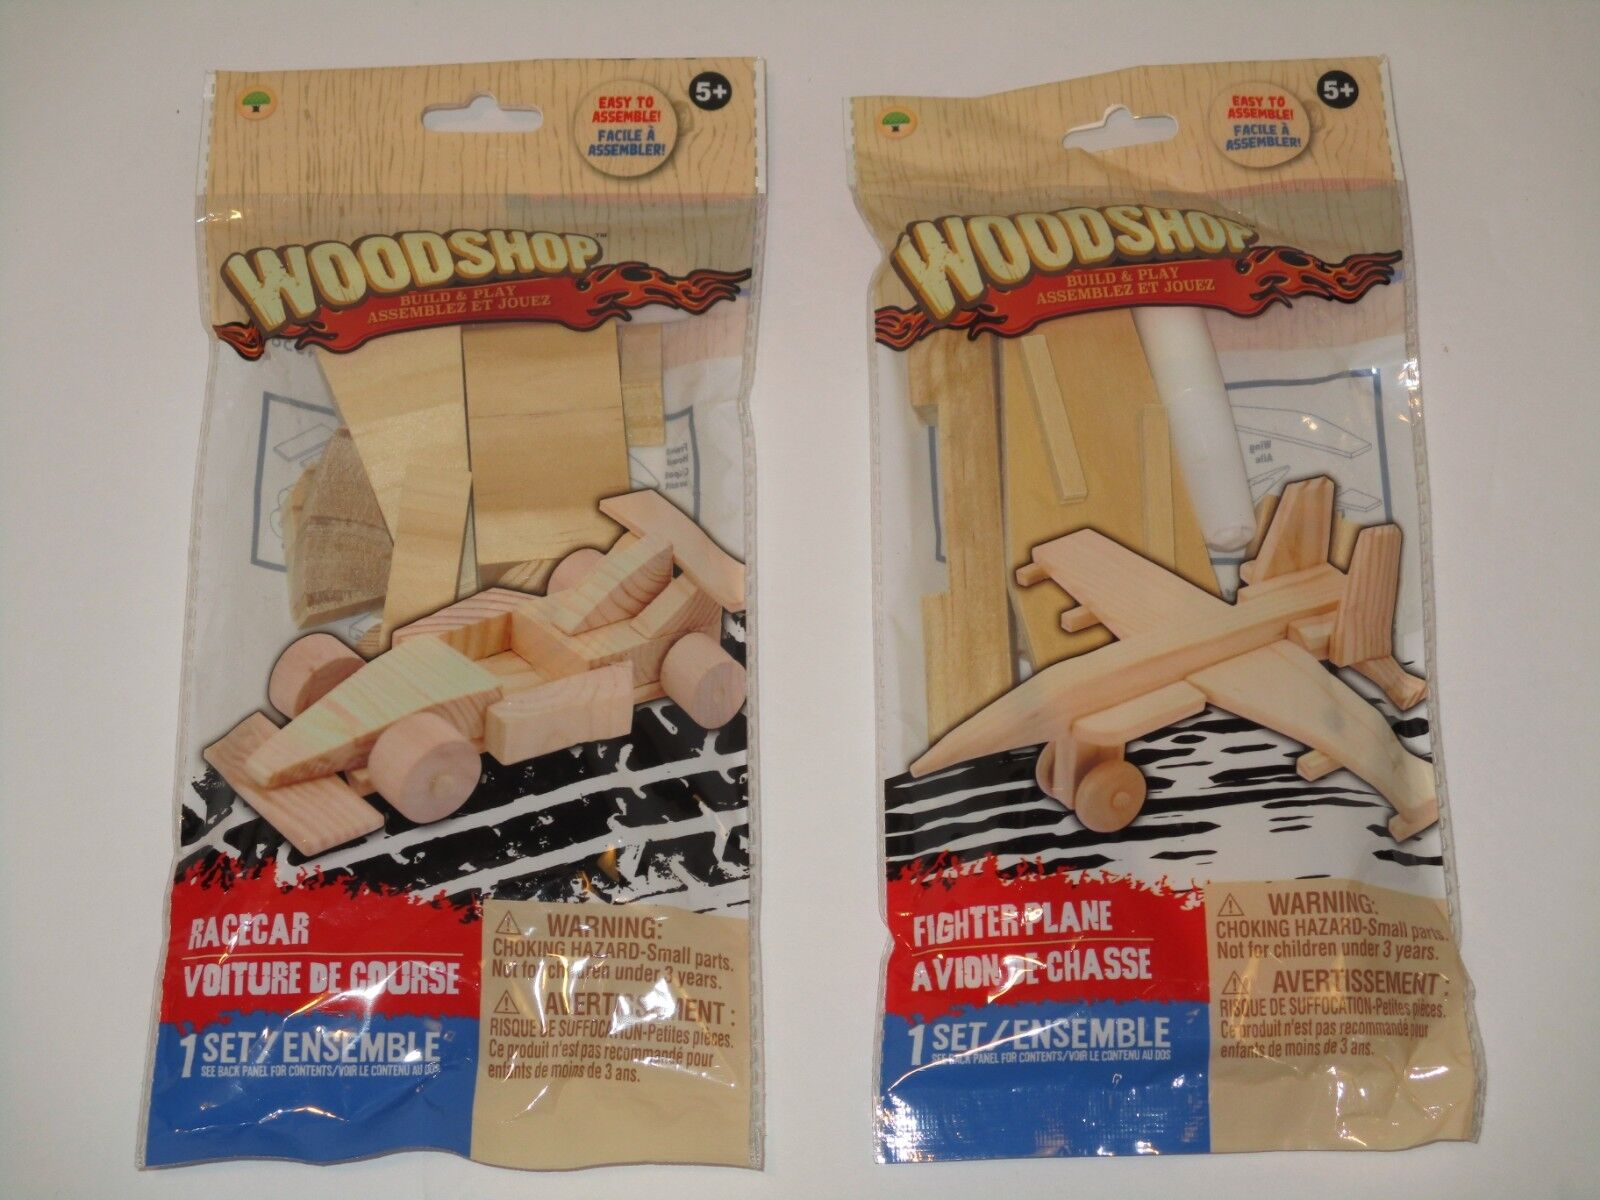 Wood Model Kits - Build Real Wooden Airplane & Race Car LOT